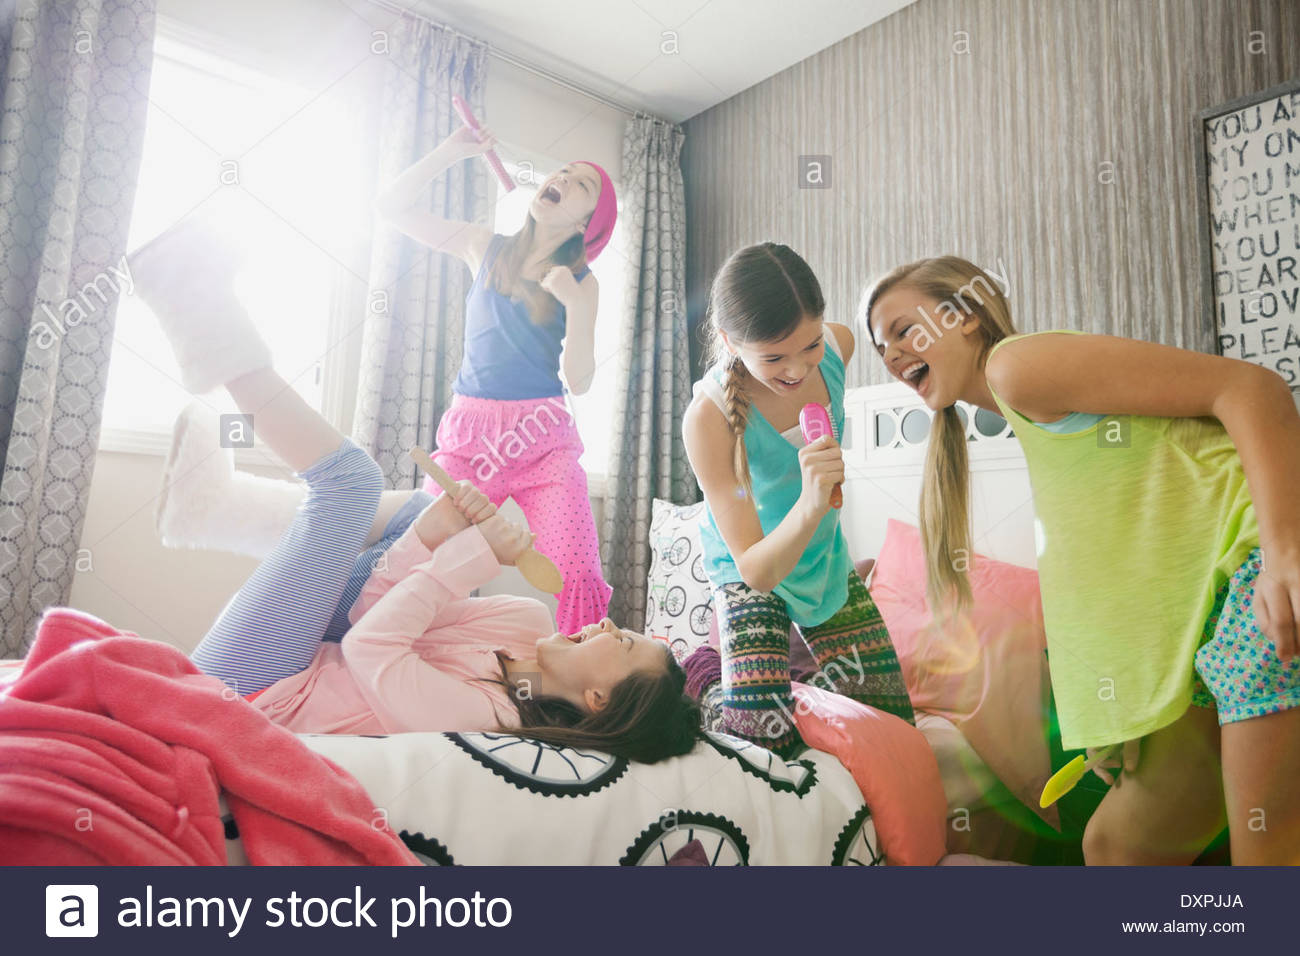 Cheerful girls singing into hairbrushes at slumber party - Stock Image